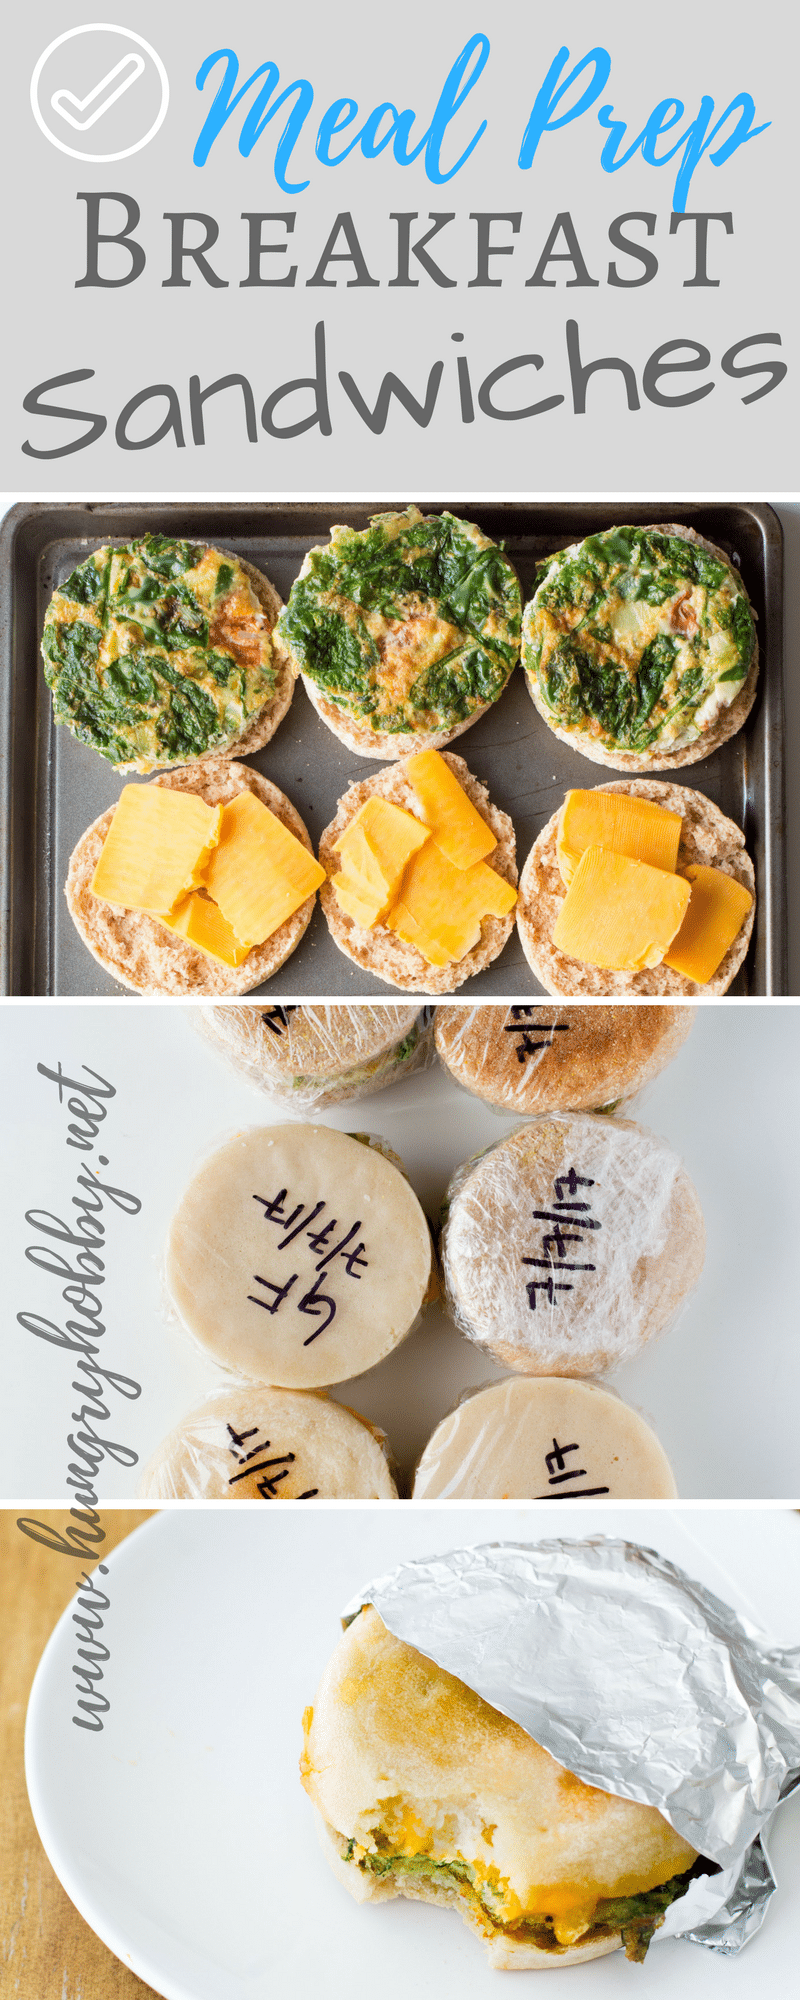 These Make Ahead Breakfast Sandwiches are freezer friendly and the game changer you need to make your morning routine smarter and more delicious!